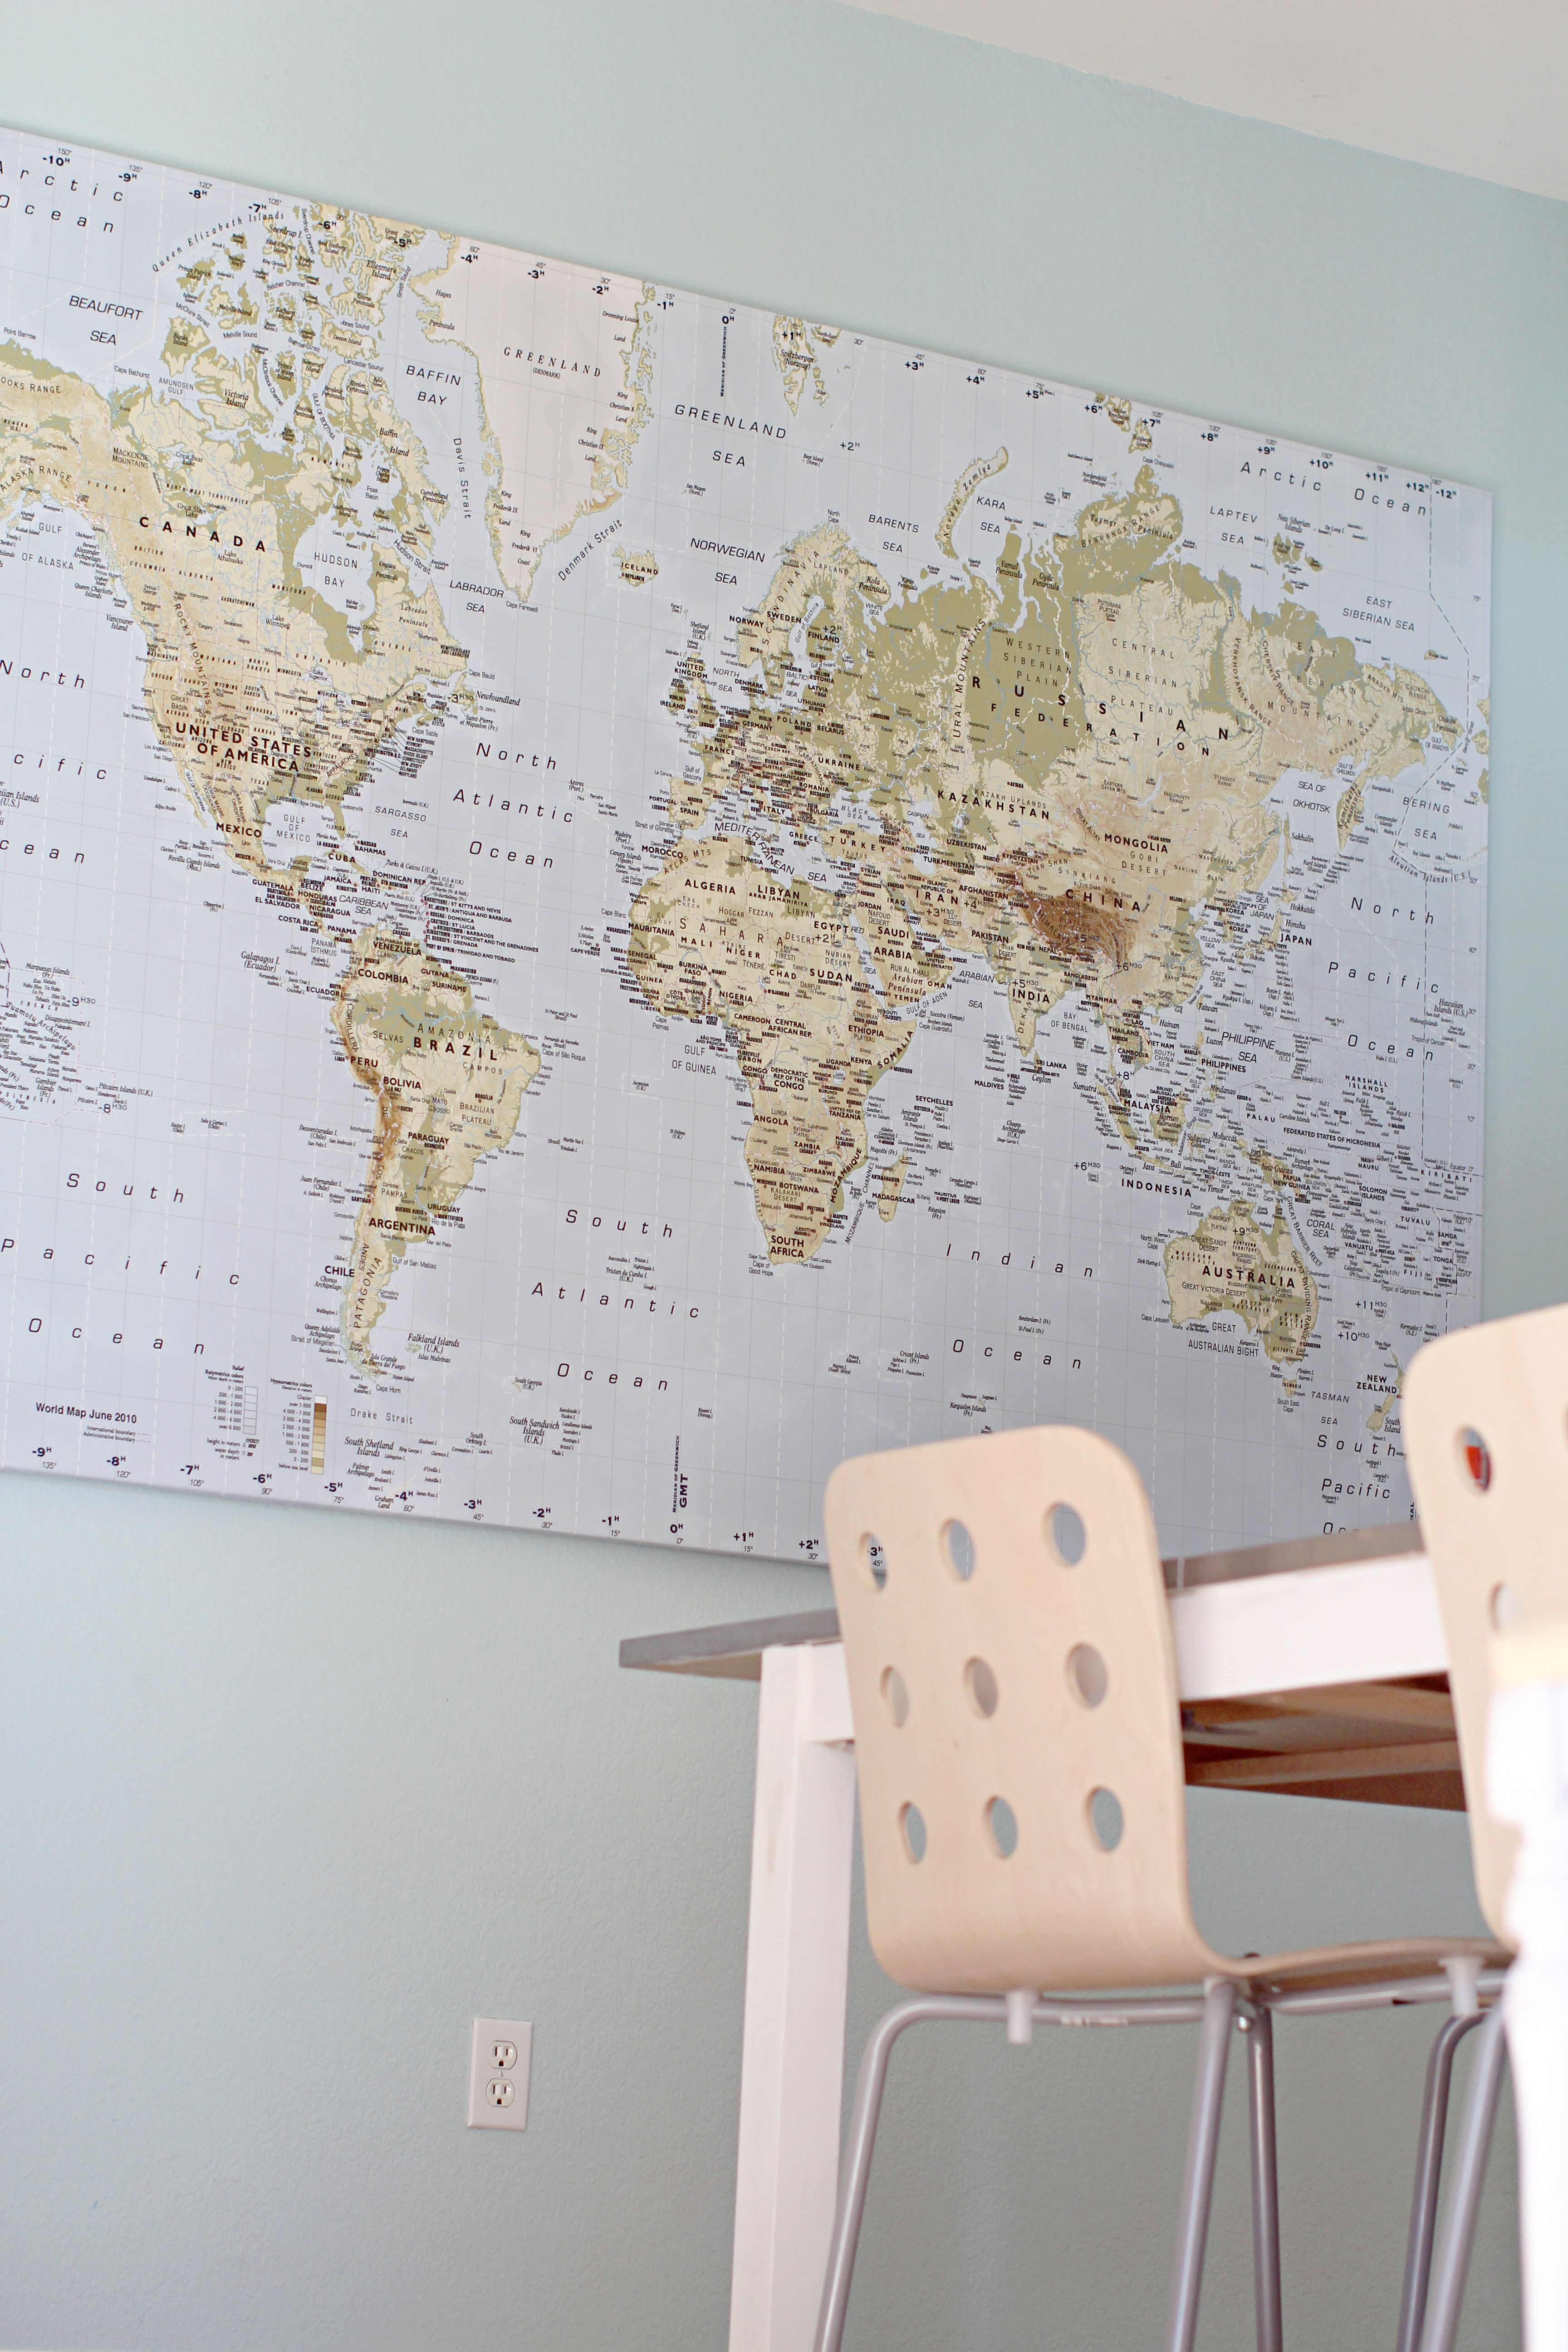 IKEA map. I love maps | Just stuff I like | Pinterest | Room ...